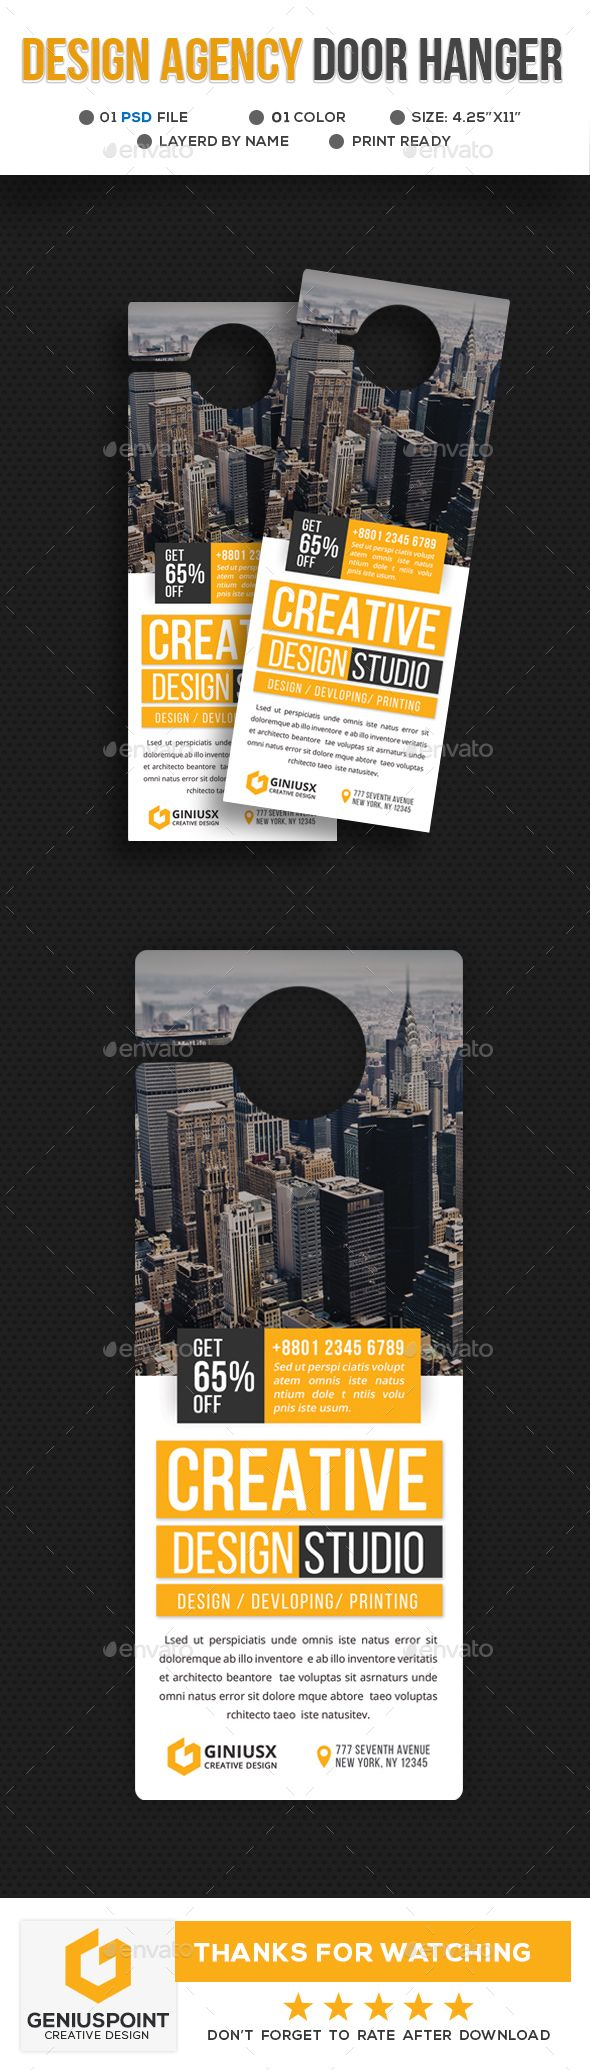 Design Agency Door Hanger | Design agency, Door hanger template and ...